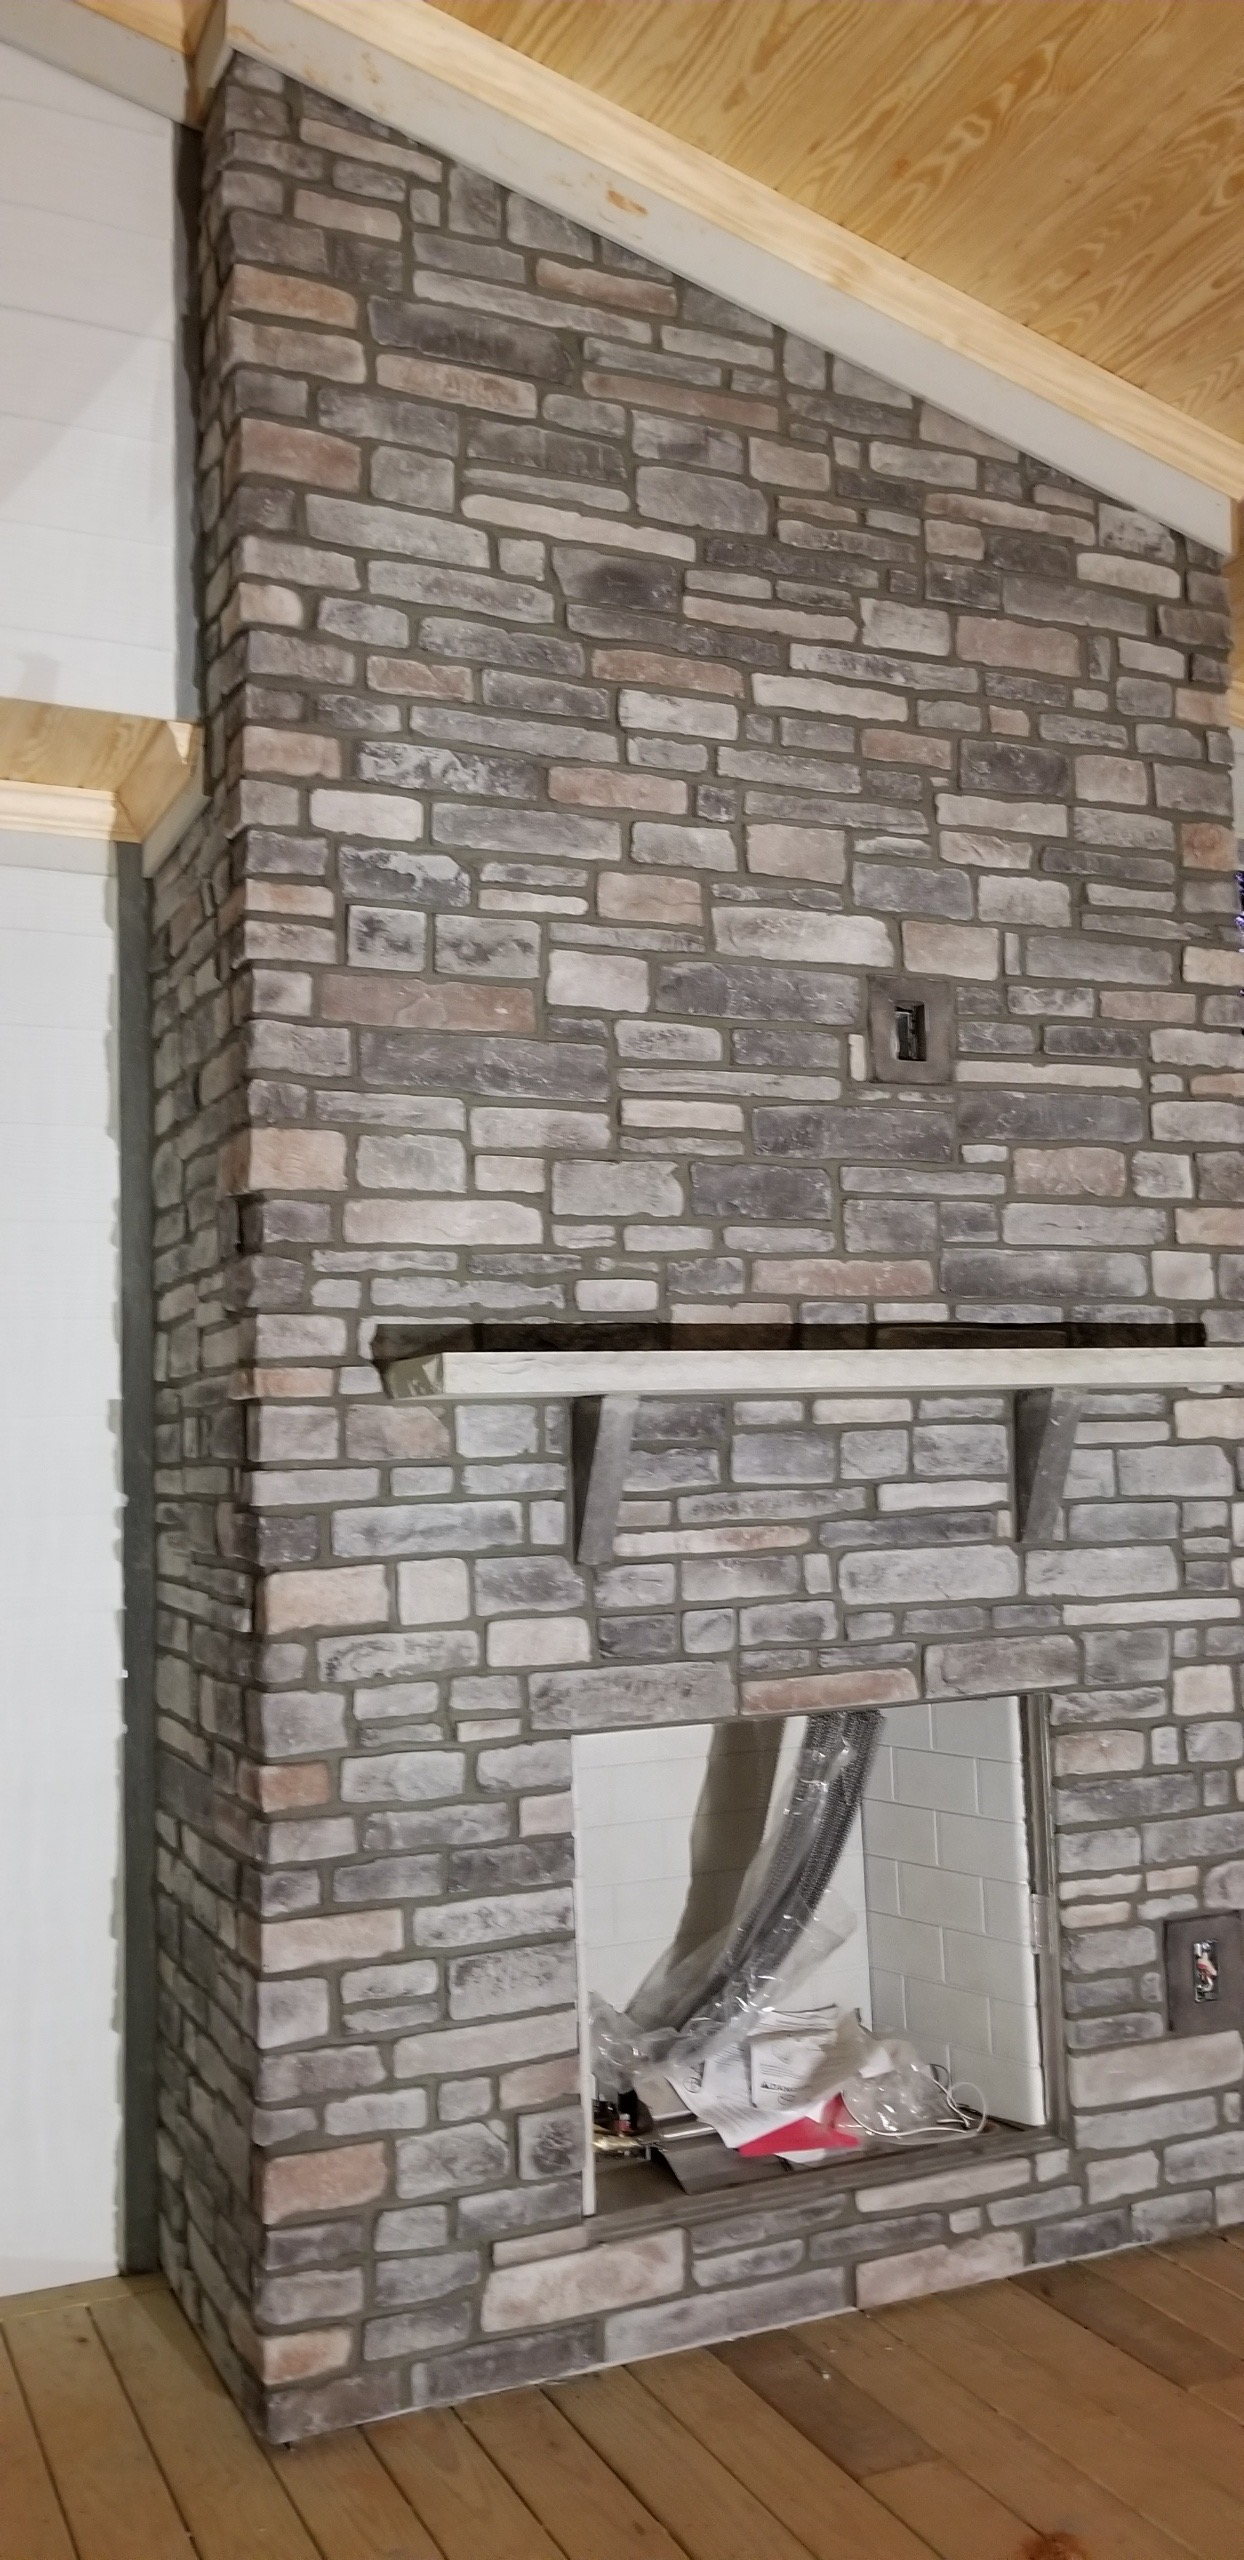 Kentucky stack with grout joint